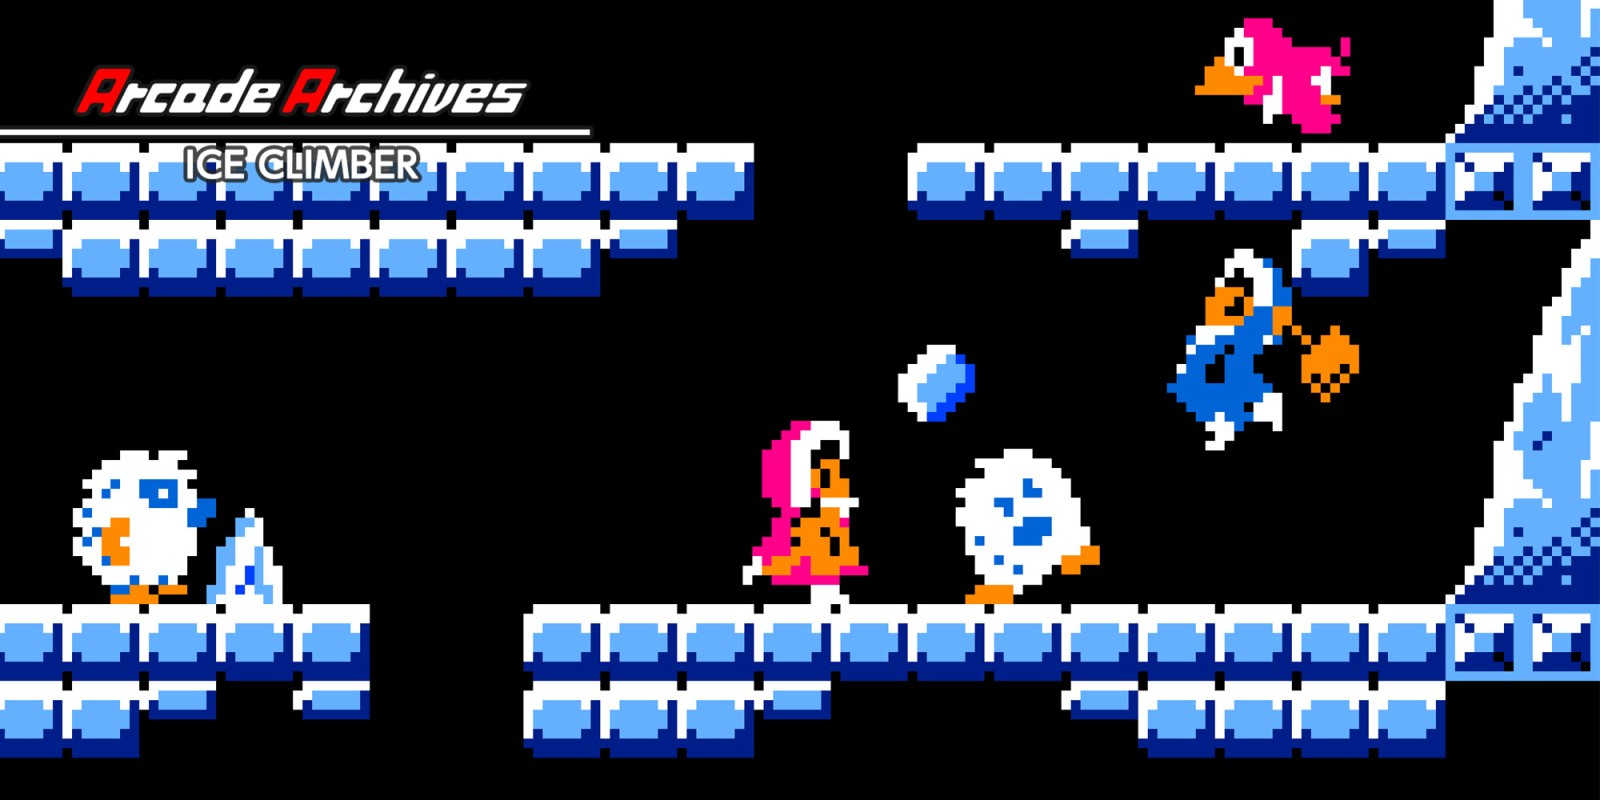 Arcade Archives VS. Ice Climber Masthead